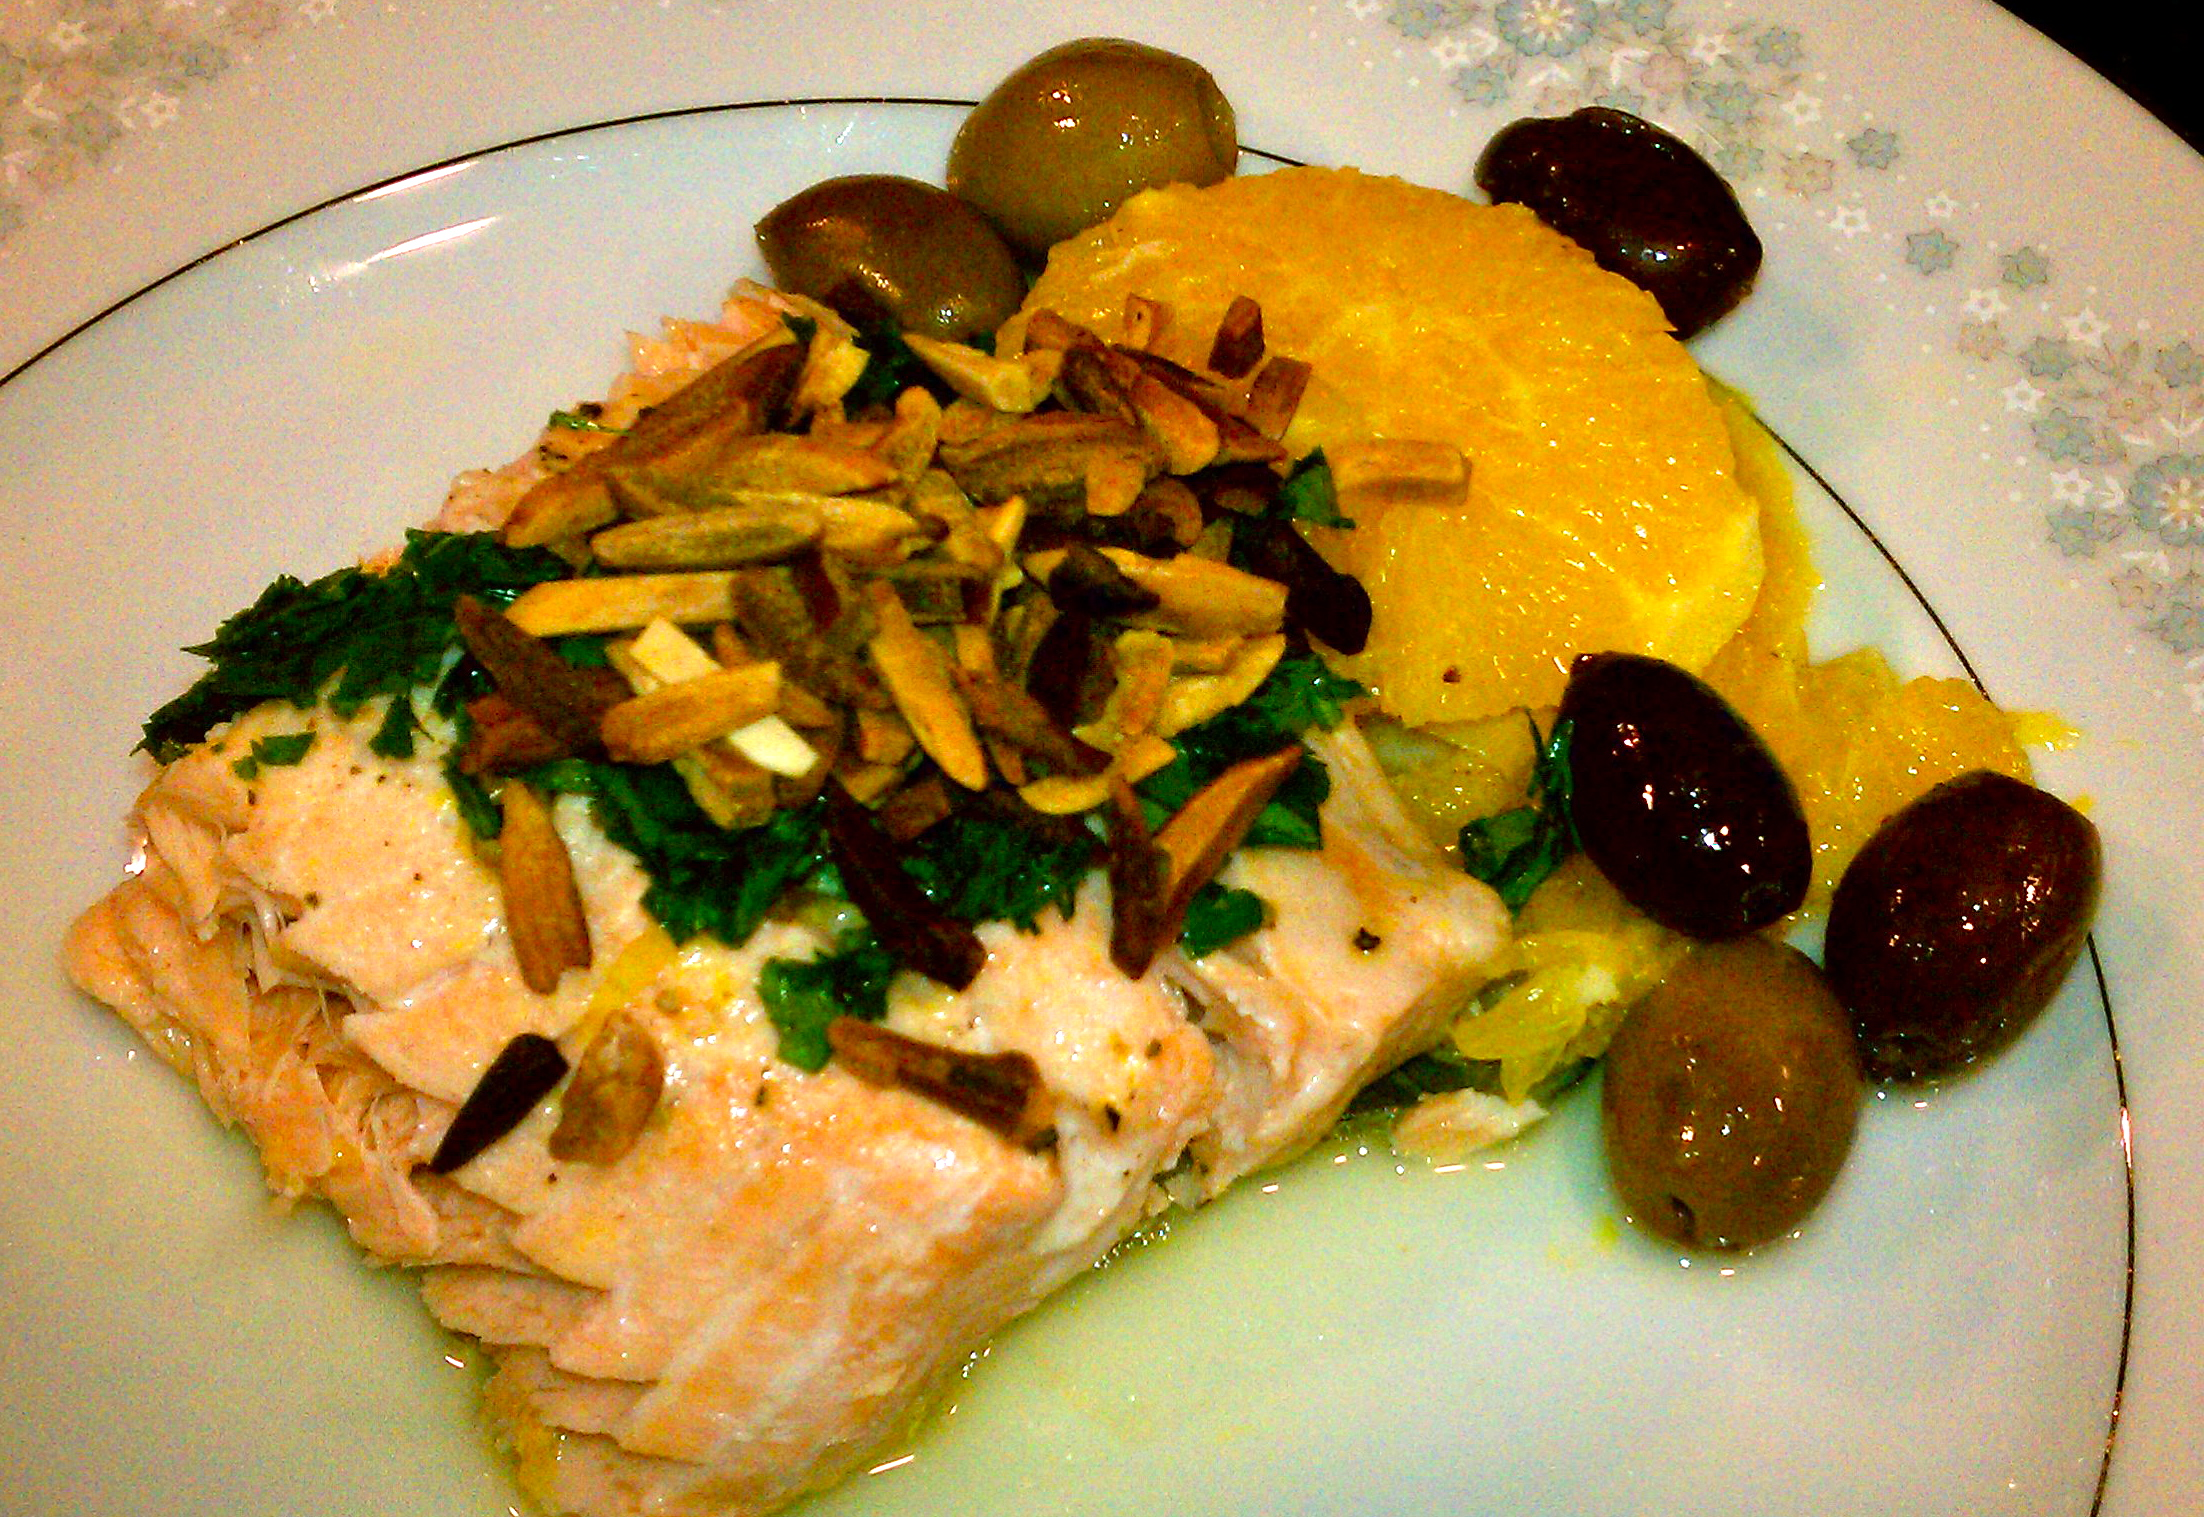 Pan Roasted Salmon with Olives, Oranges and Almonds